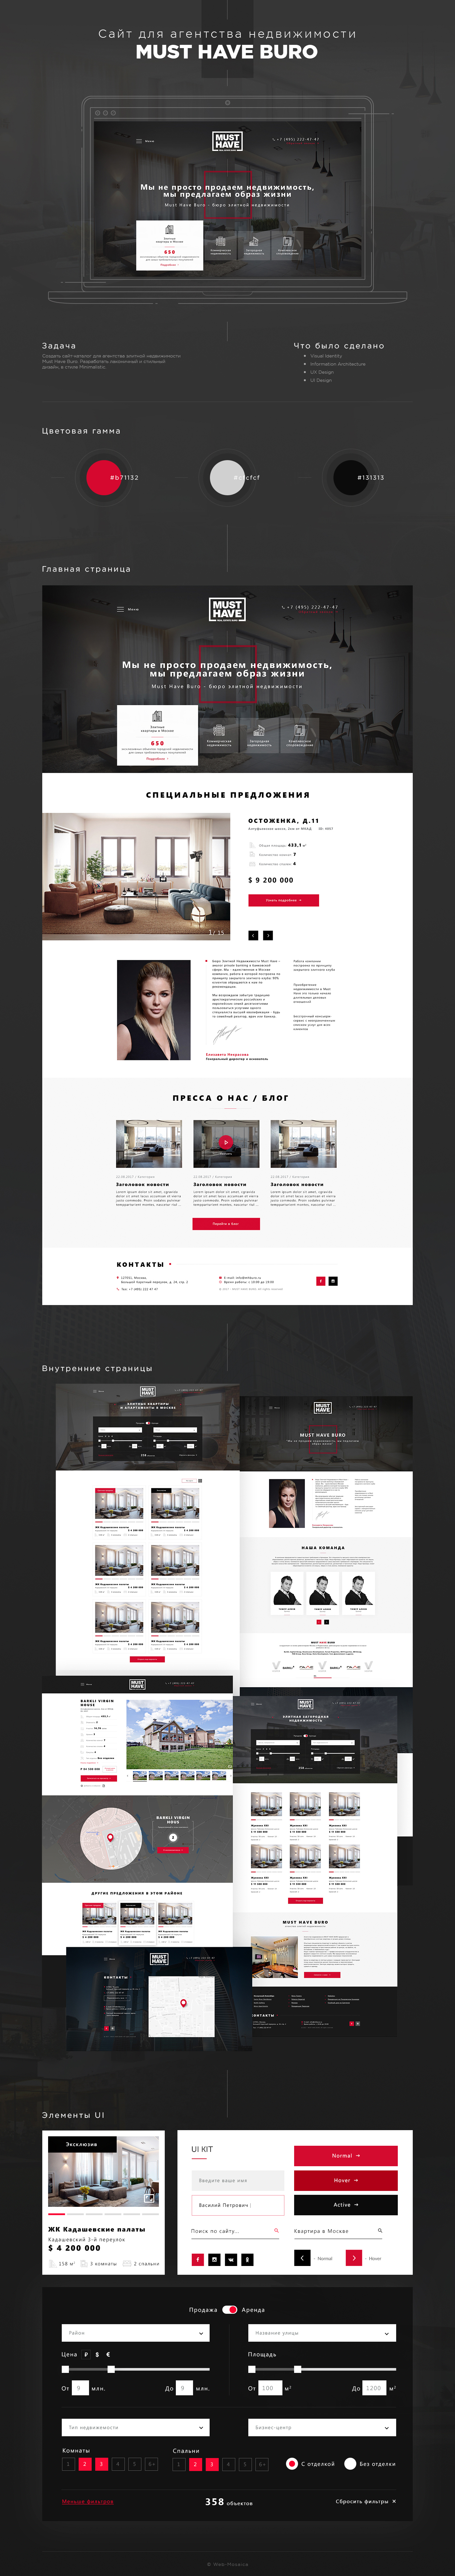 Real estate agency Must Have Buro on Behance